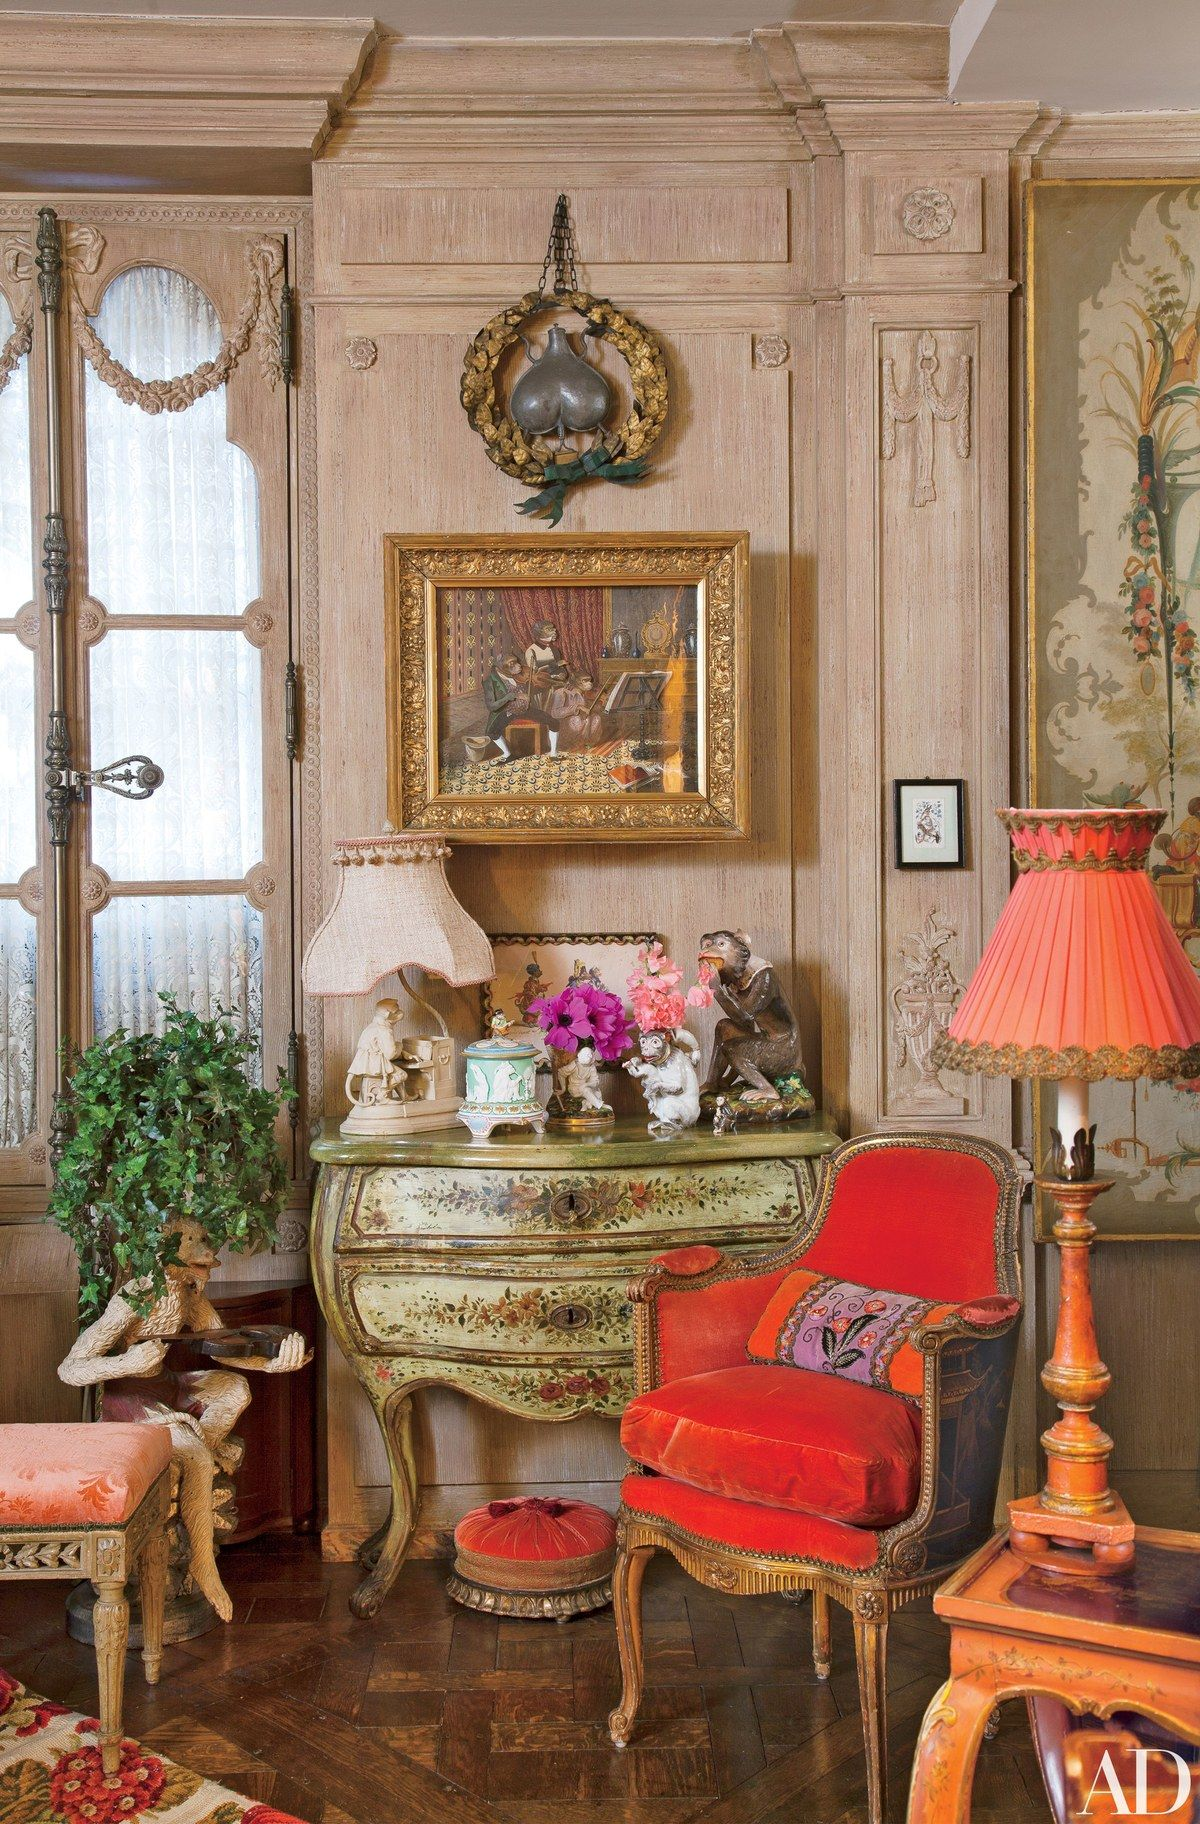 Of singerie tops an 18th century venetian bombé chest in the living room the back of the english chair at right is painted with chinoiserie designs